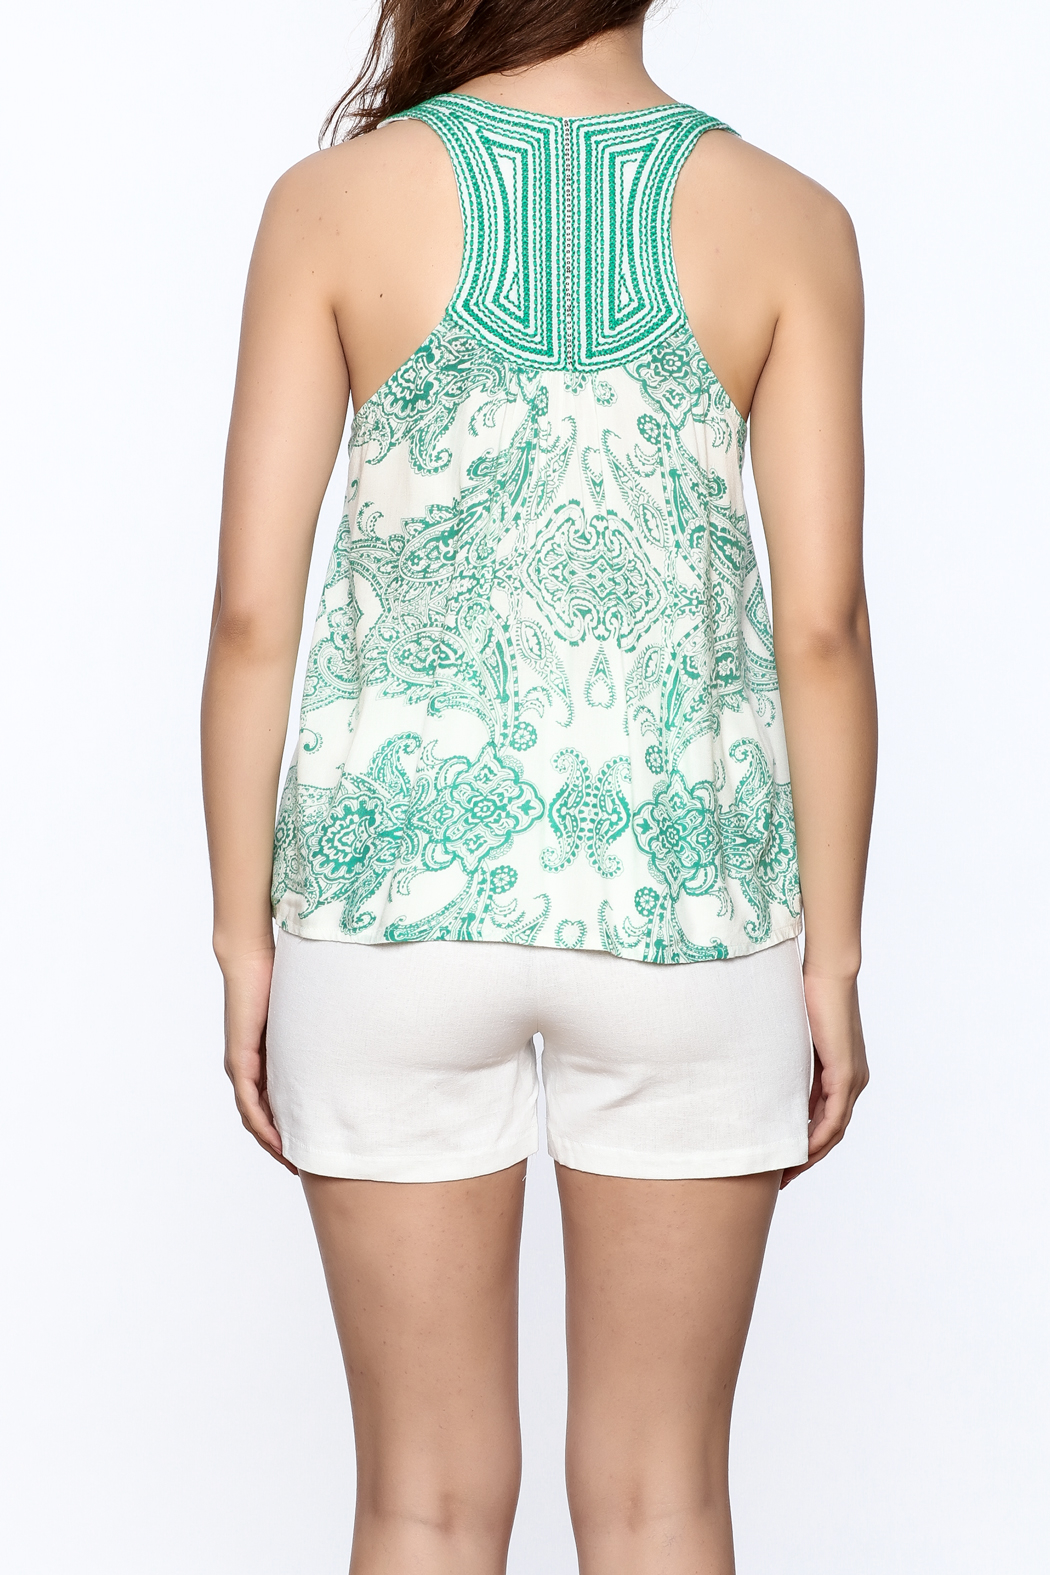 Ark & Co. Teal Paisley Tank - Back Cropped Image